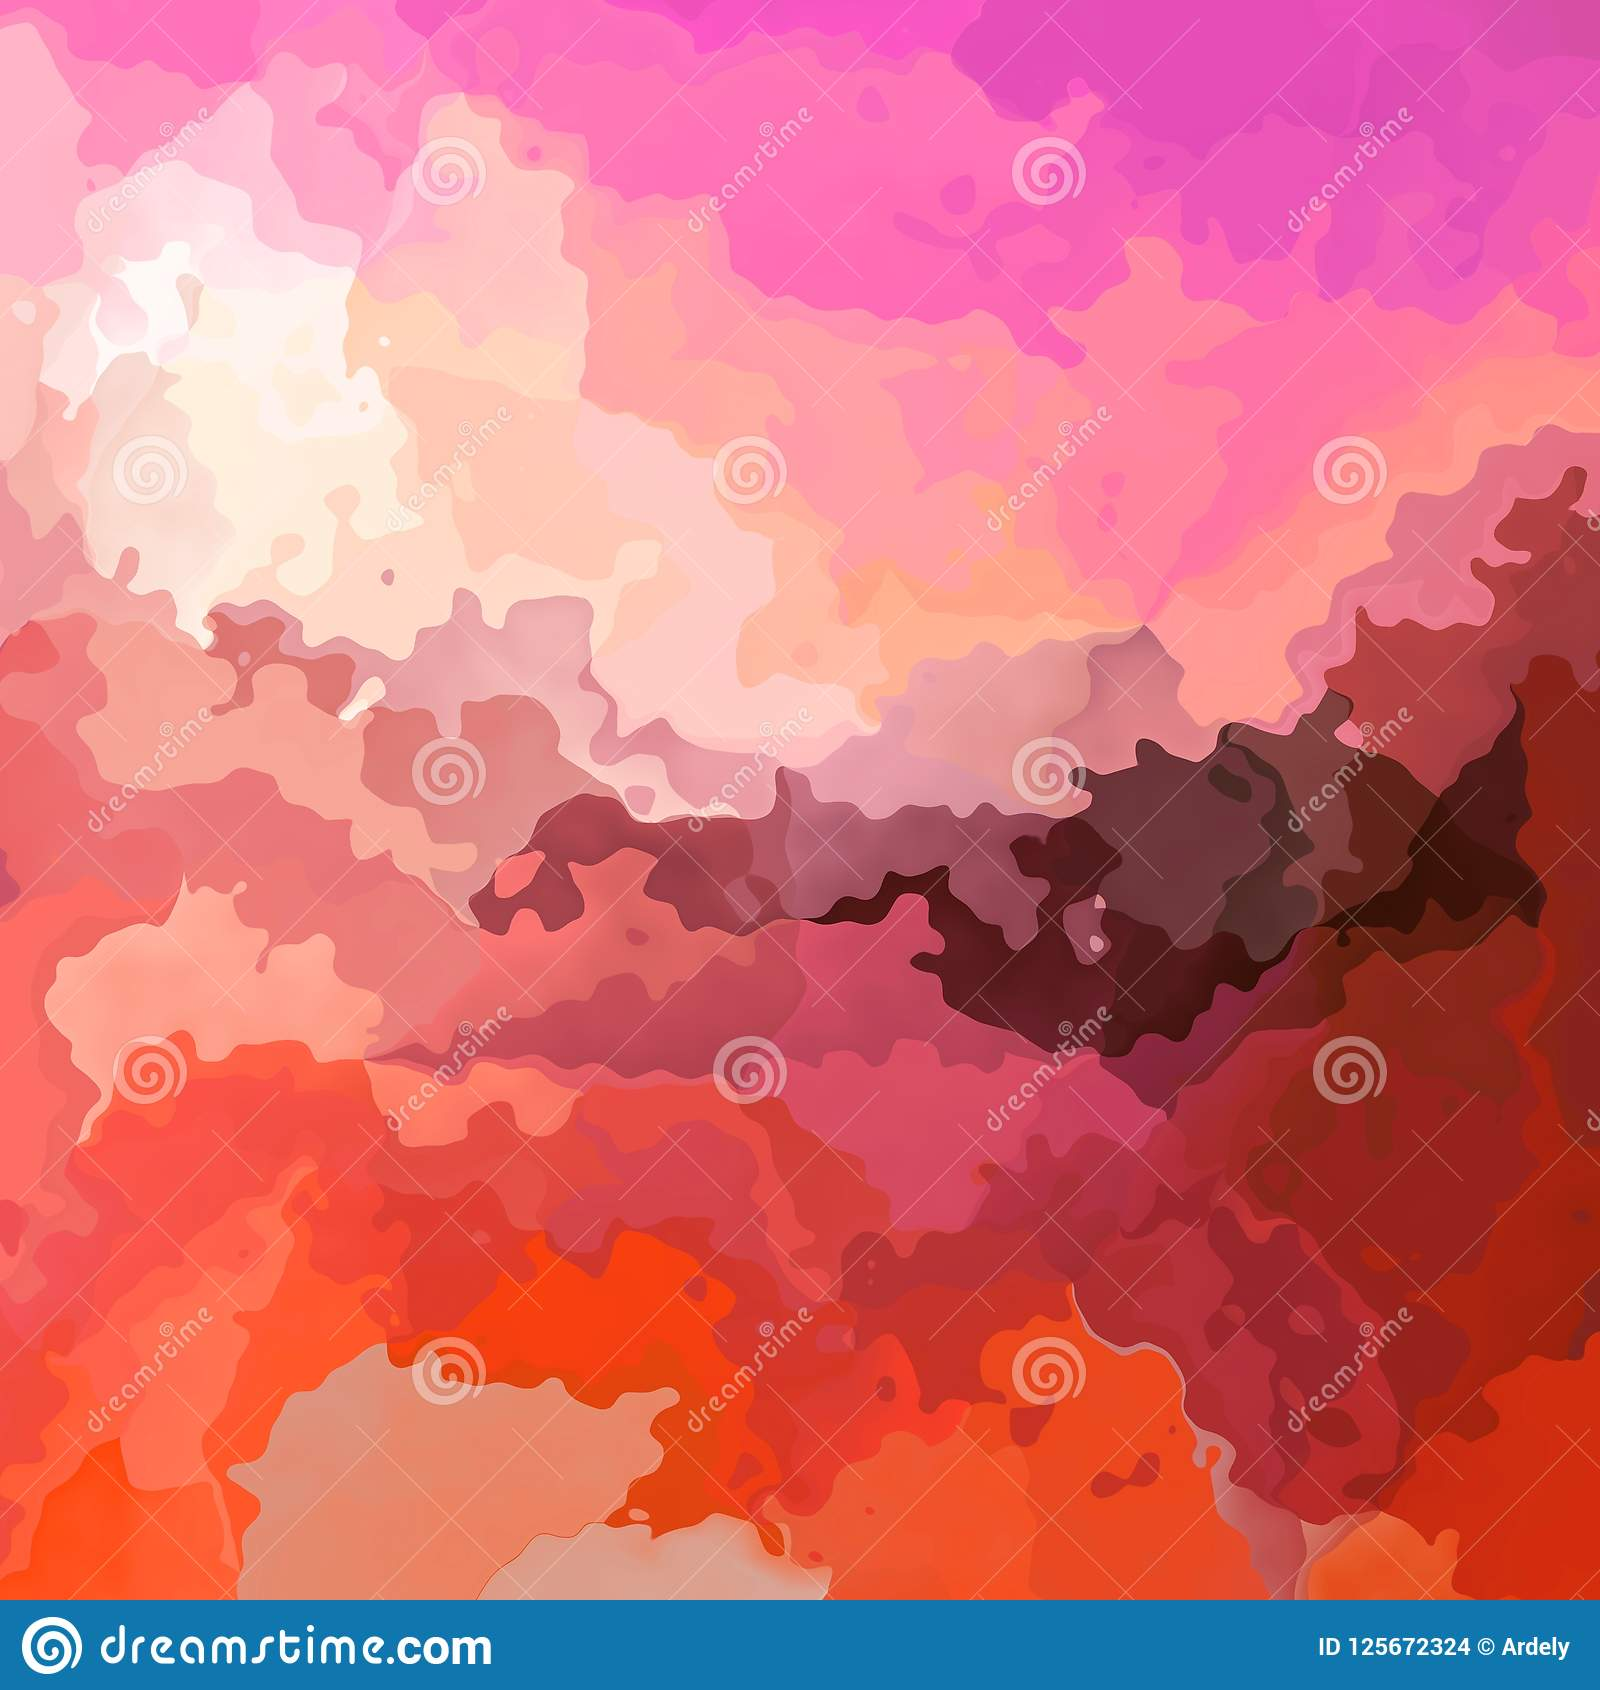 Stained Pattern Texture Square Background Hot Pink Orange